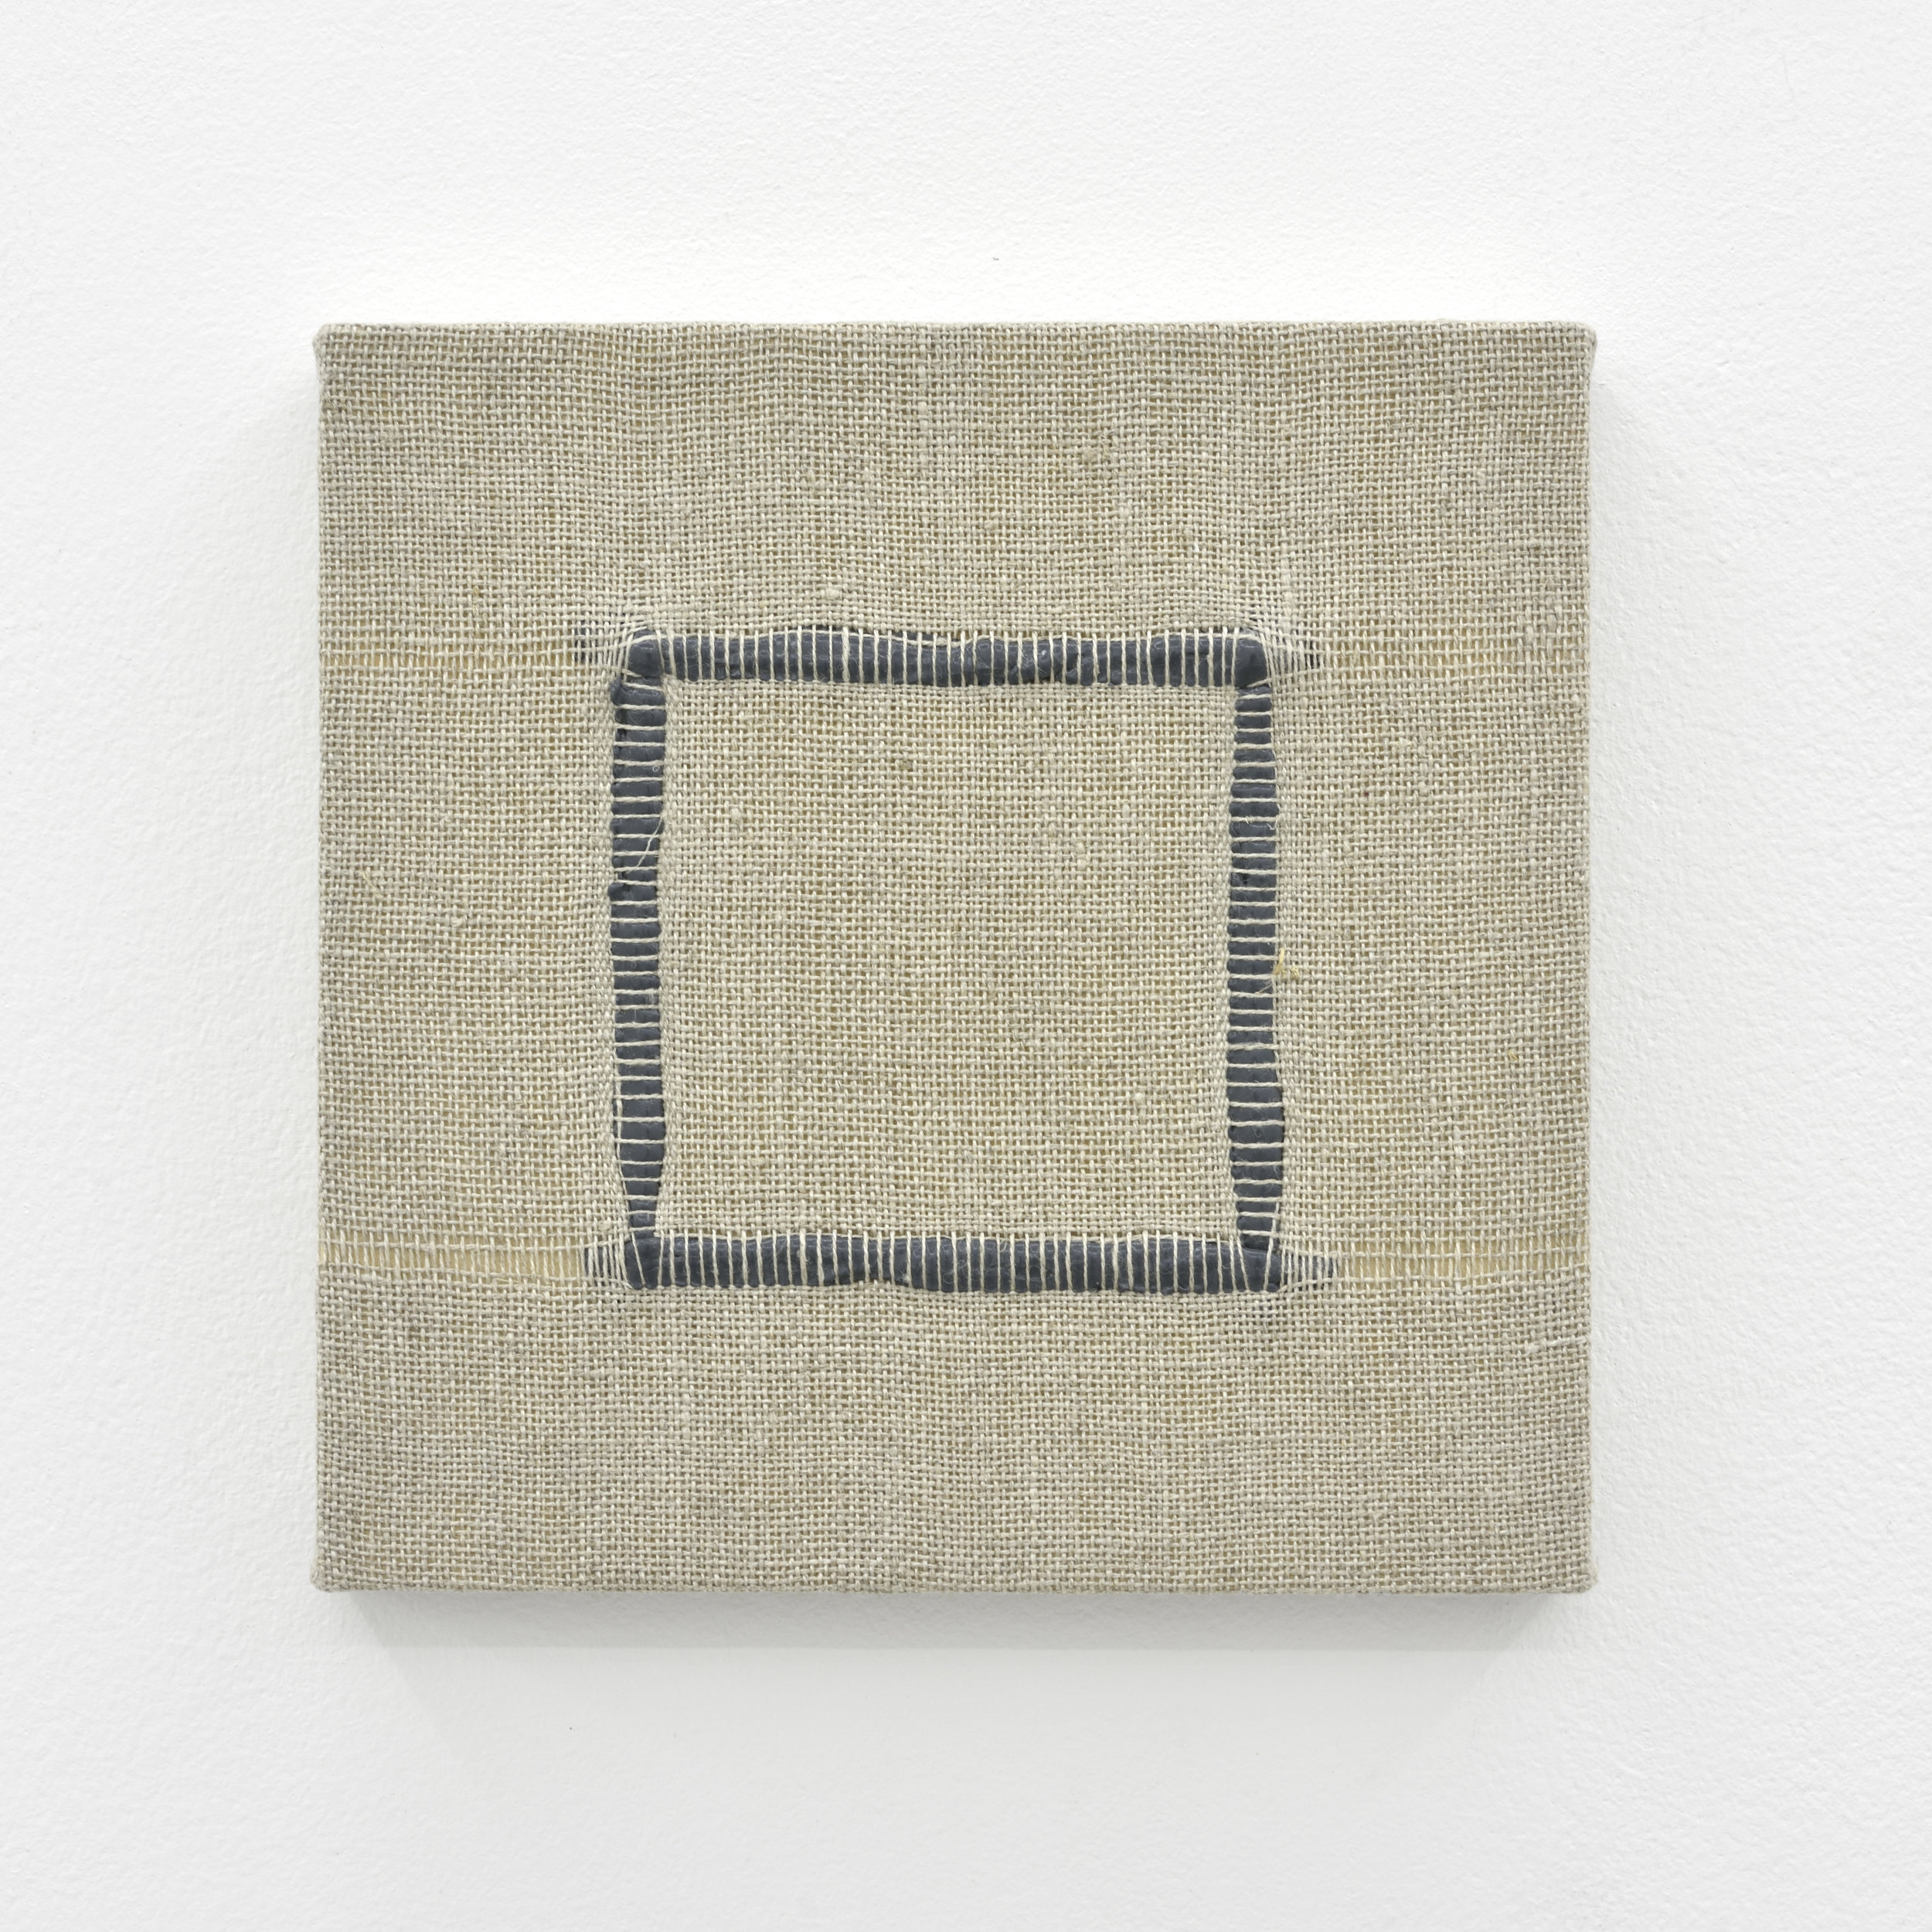 Composition for Woven Square Outline (Gray), 2017 acrylic paint woven through linen on panel 20 x 20 x 3 cm - 7 7/8 x 7 7/8 x 1 1/8 inches